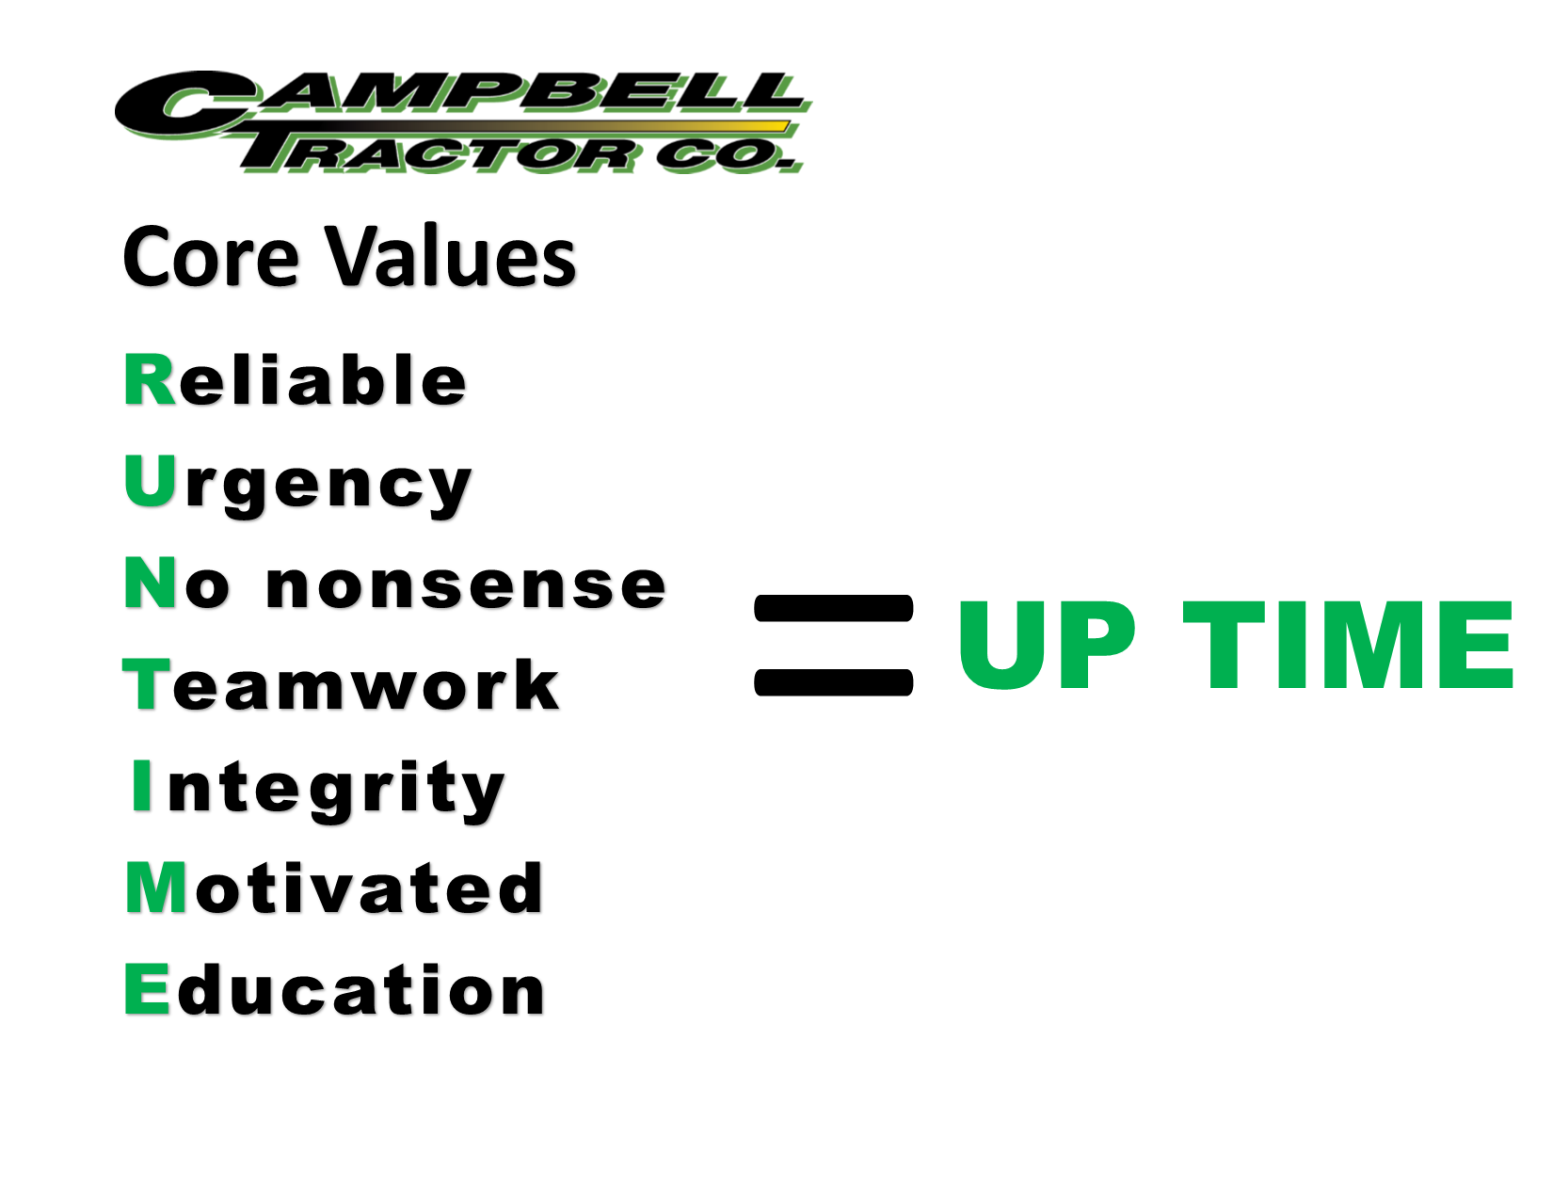 Core Values Campbell Tractor Company